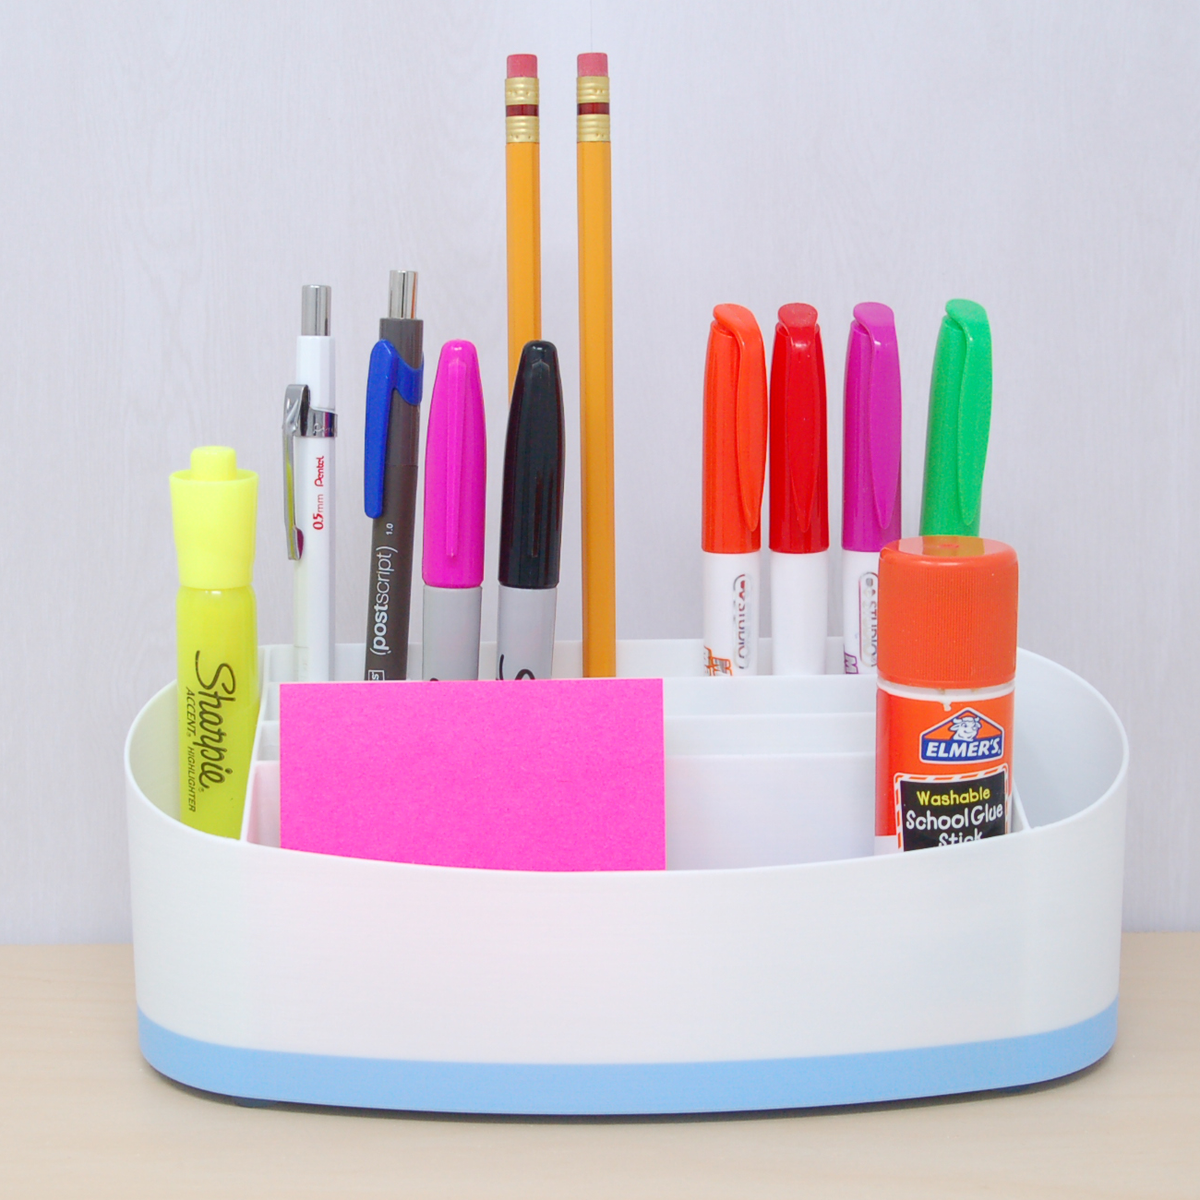 Desk organizer white with blue accent colour